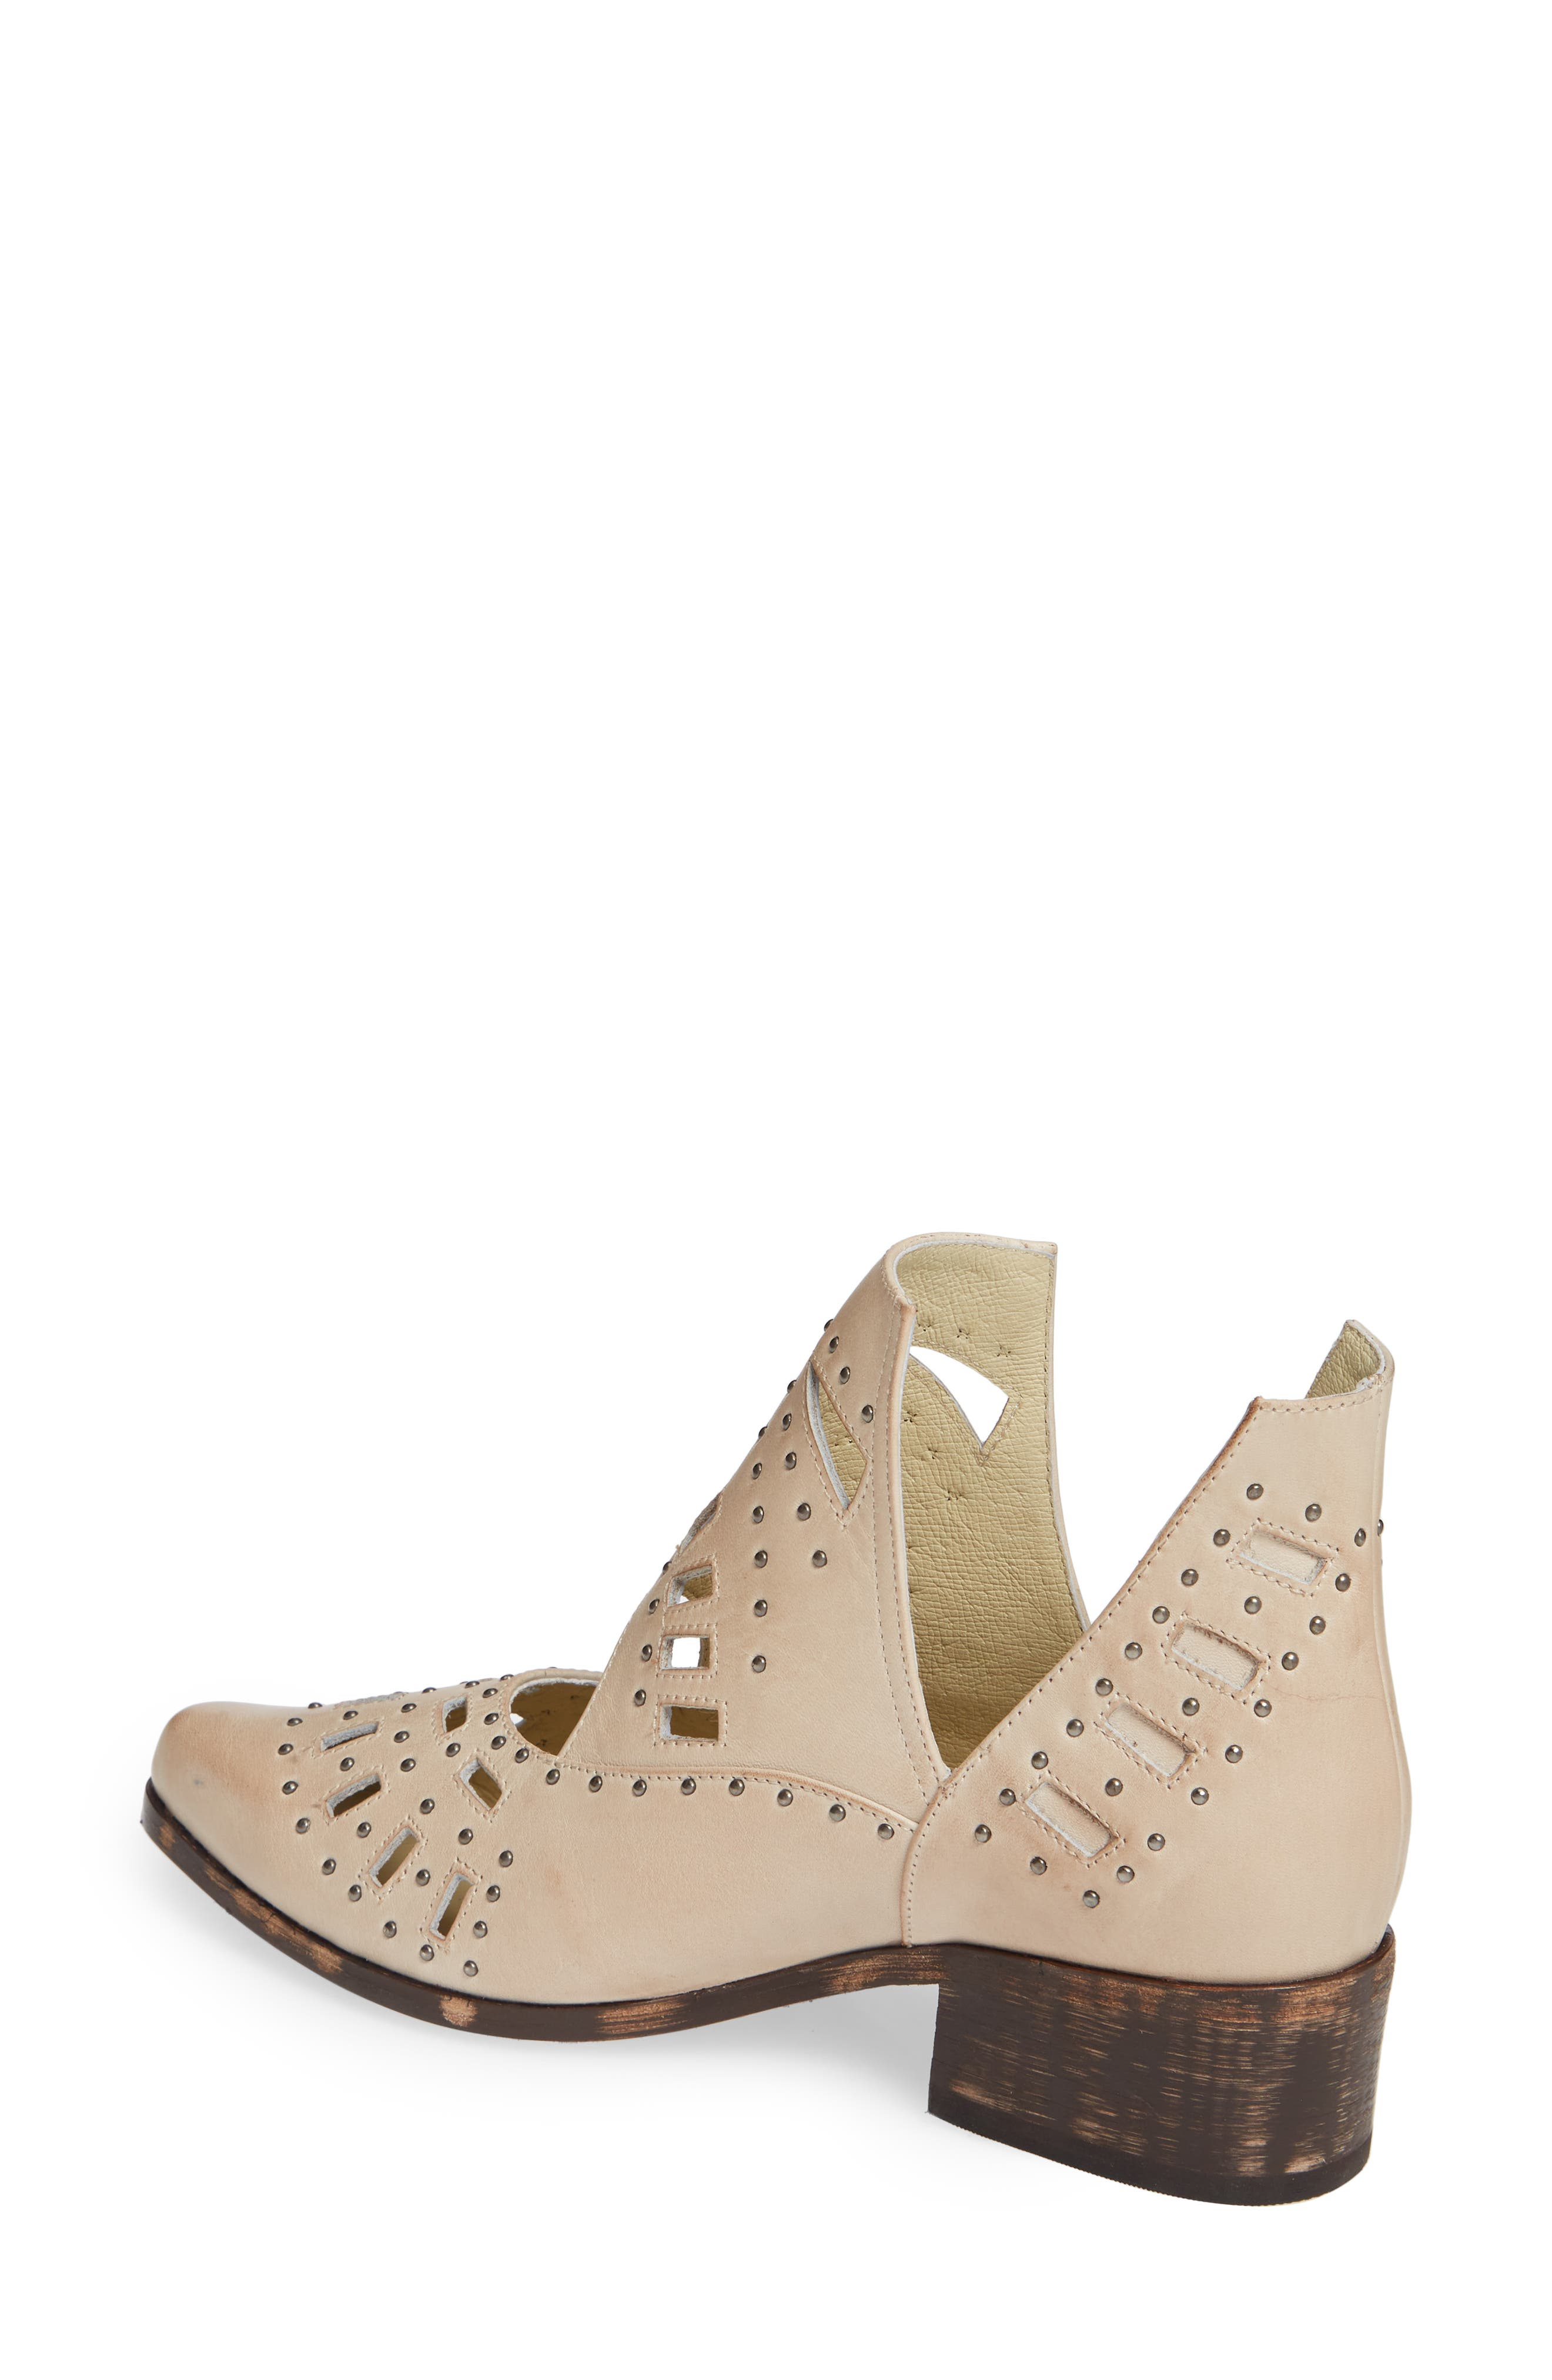 Devlyn Bootie,                             Alternate thumbnail 2, color,                             WHITE LEATHER